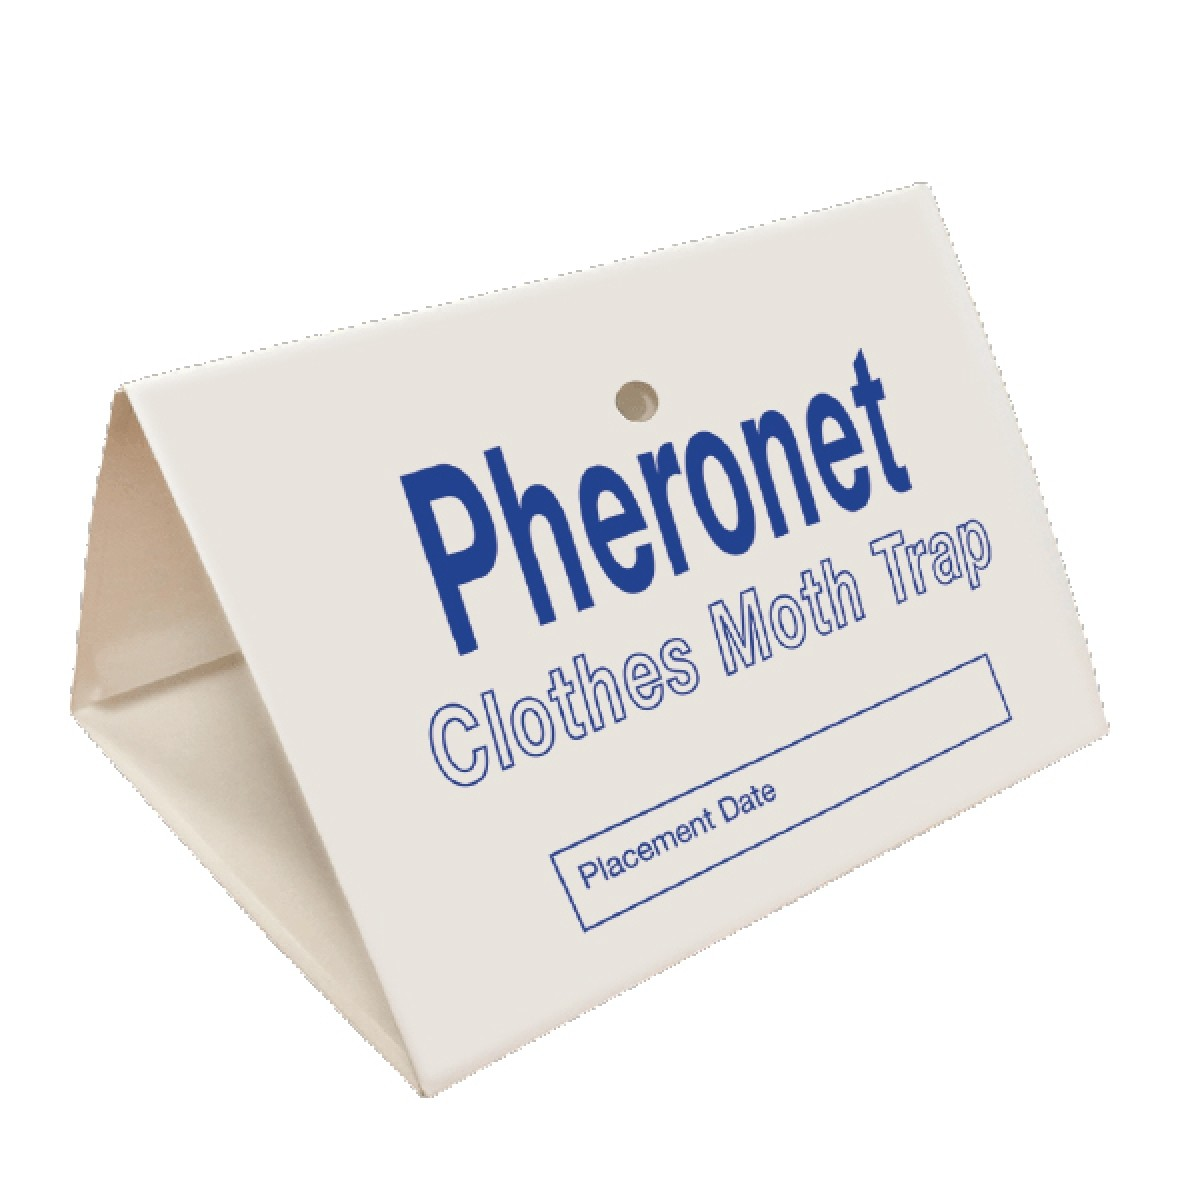 Pheronet Clothes Moth Trap